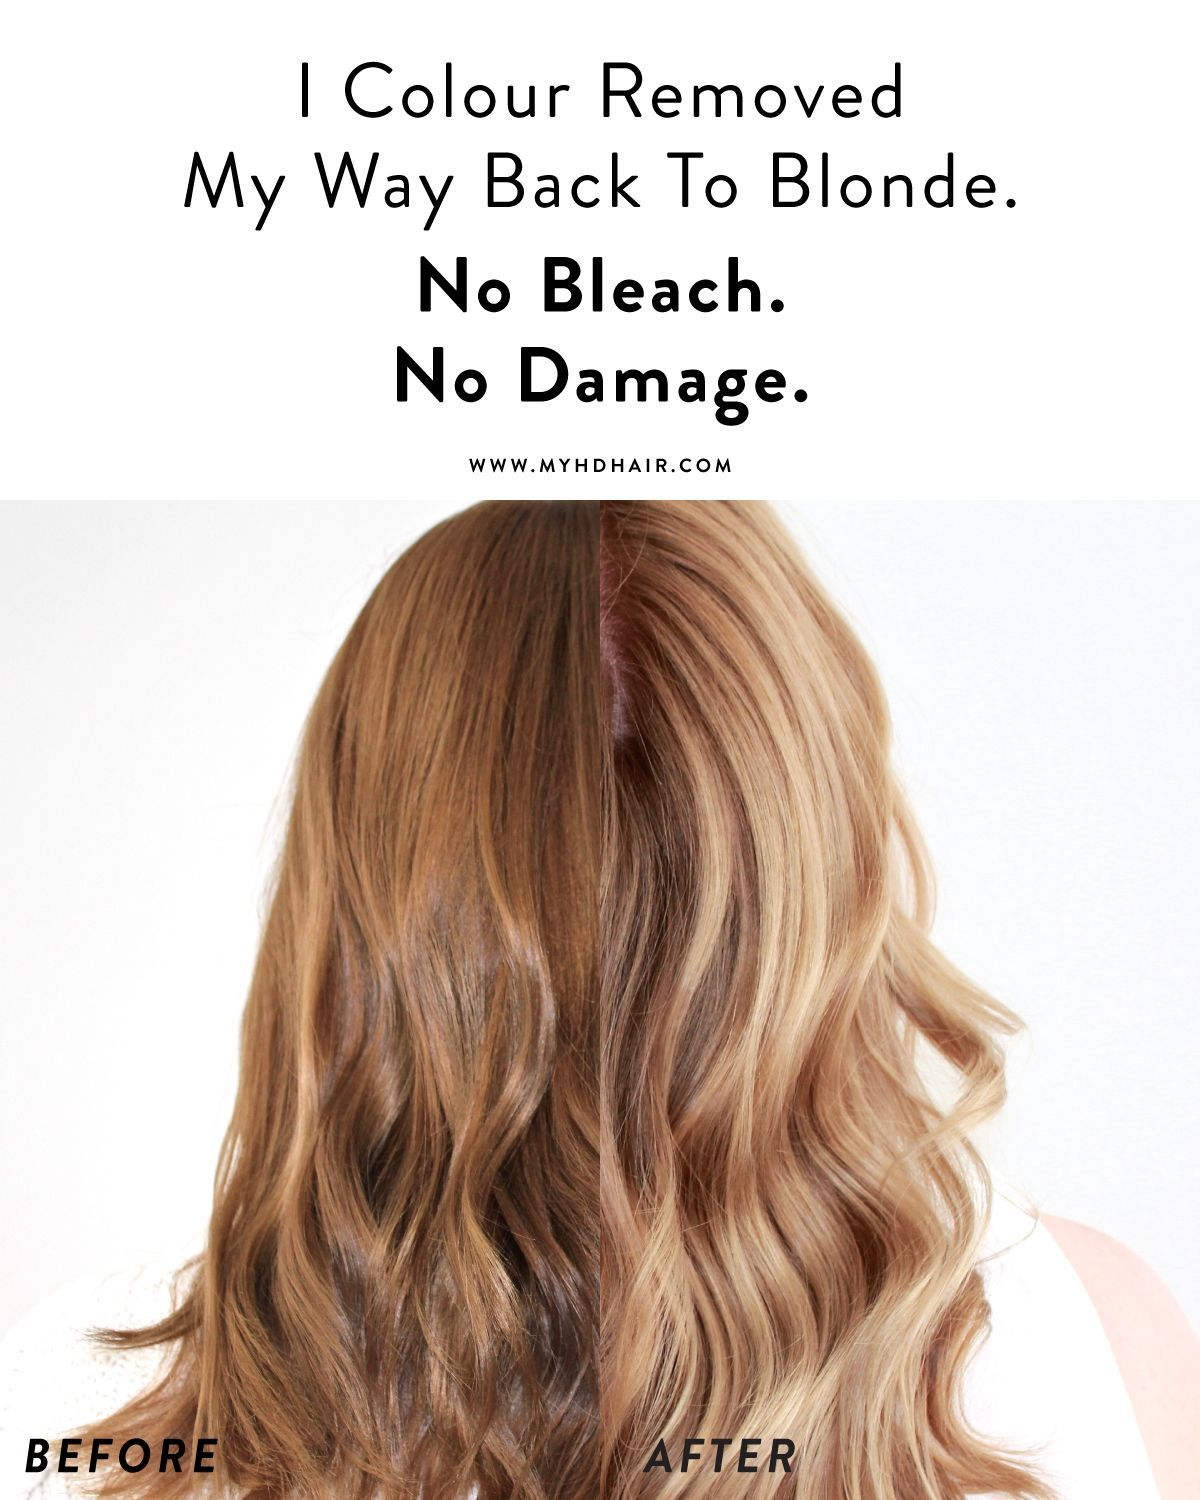 I Colour Removed My Way Back To Blonde No Bleach No Damage